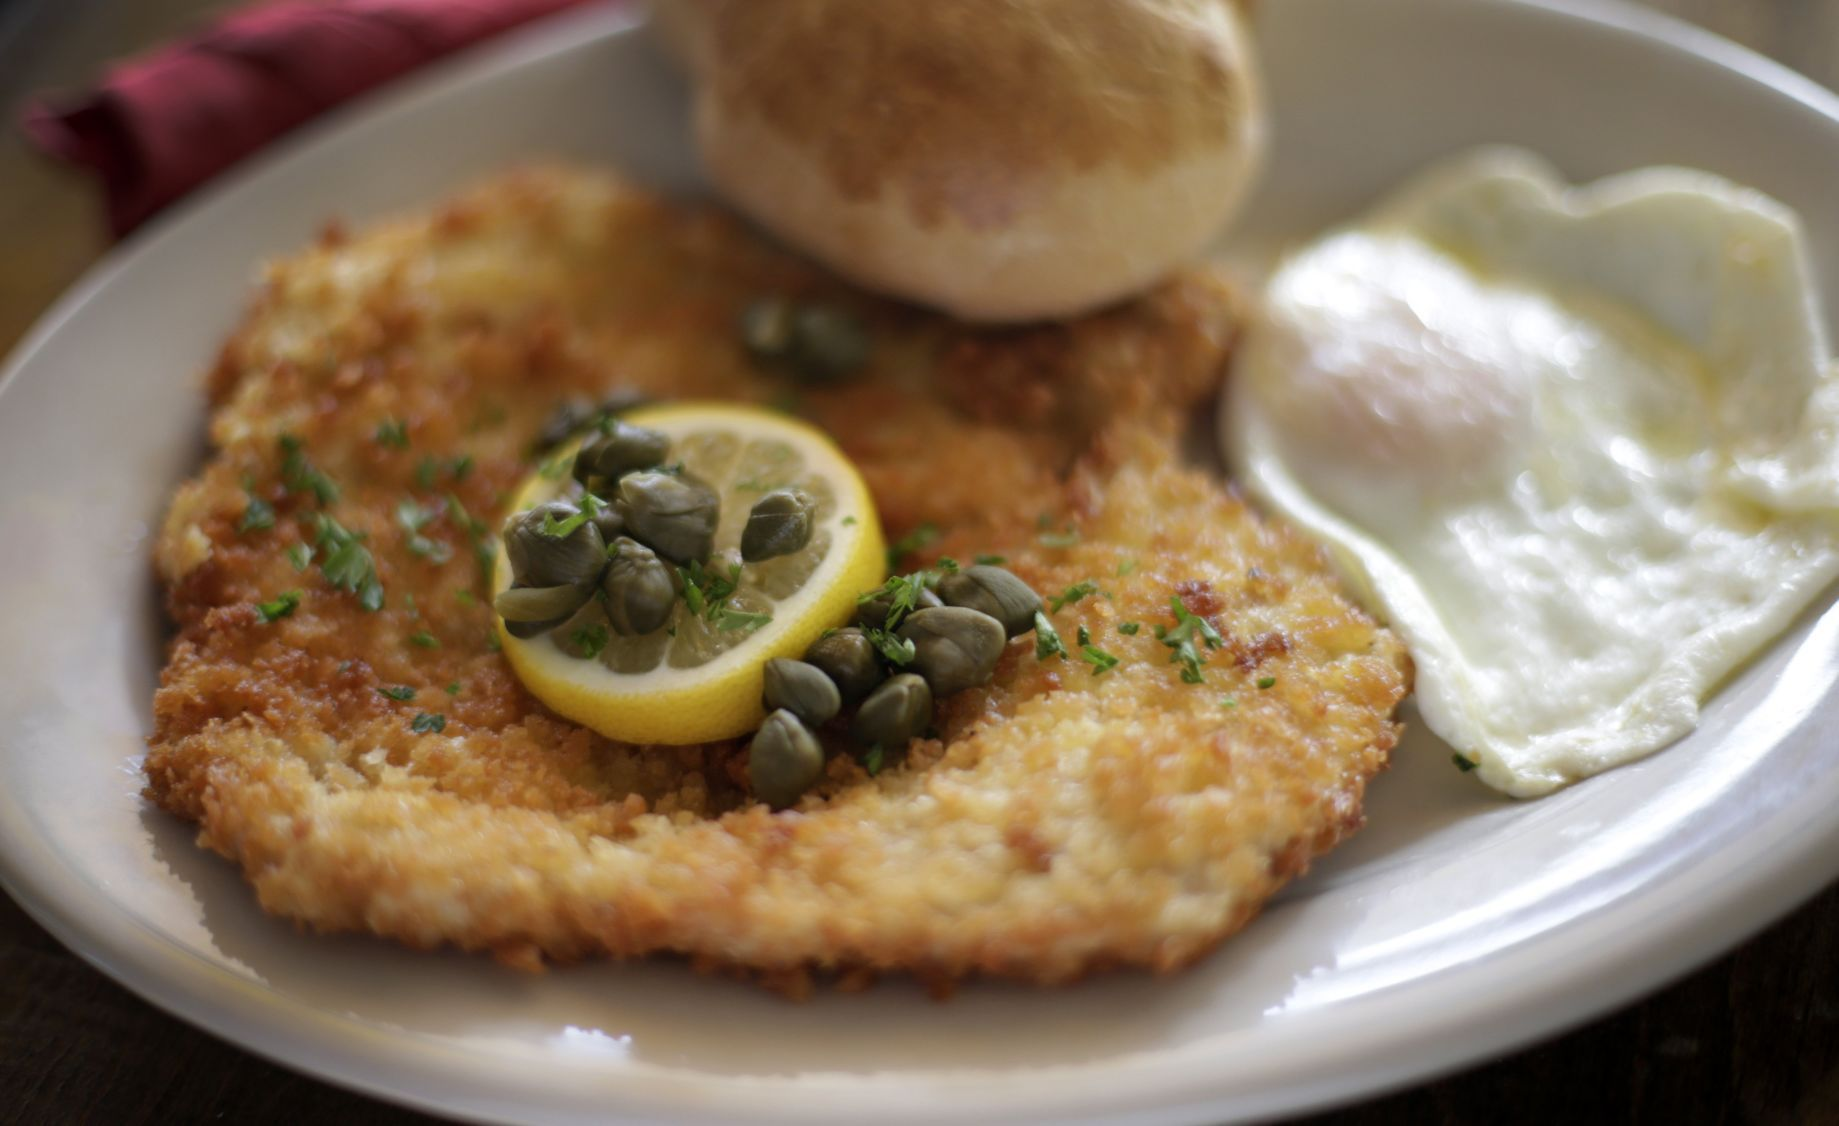 Schnitzel Restaurant Cafe Rustika Is Now A Full Blown Schnitzel Bar With A Diverse